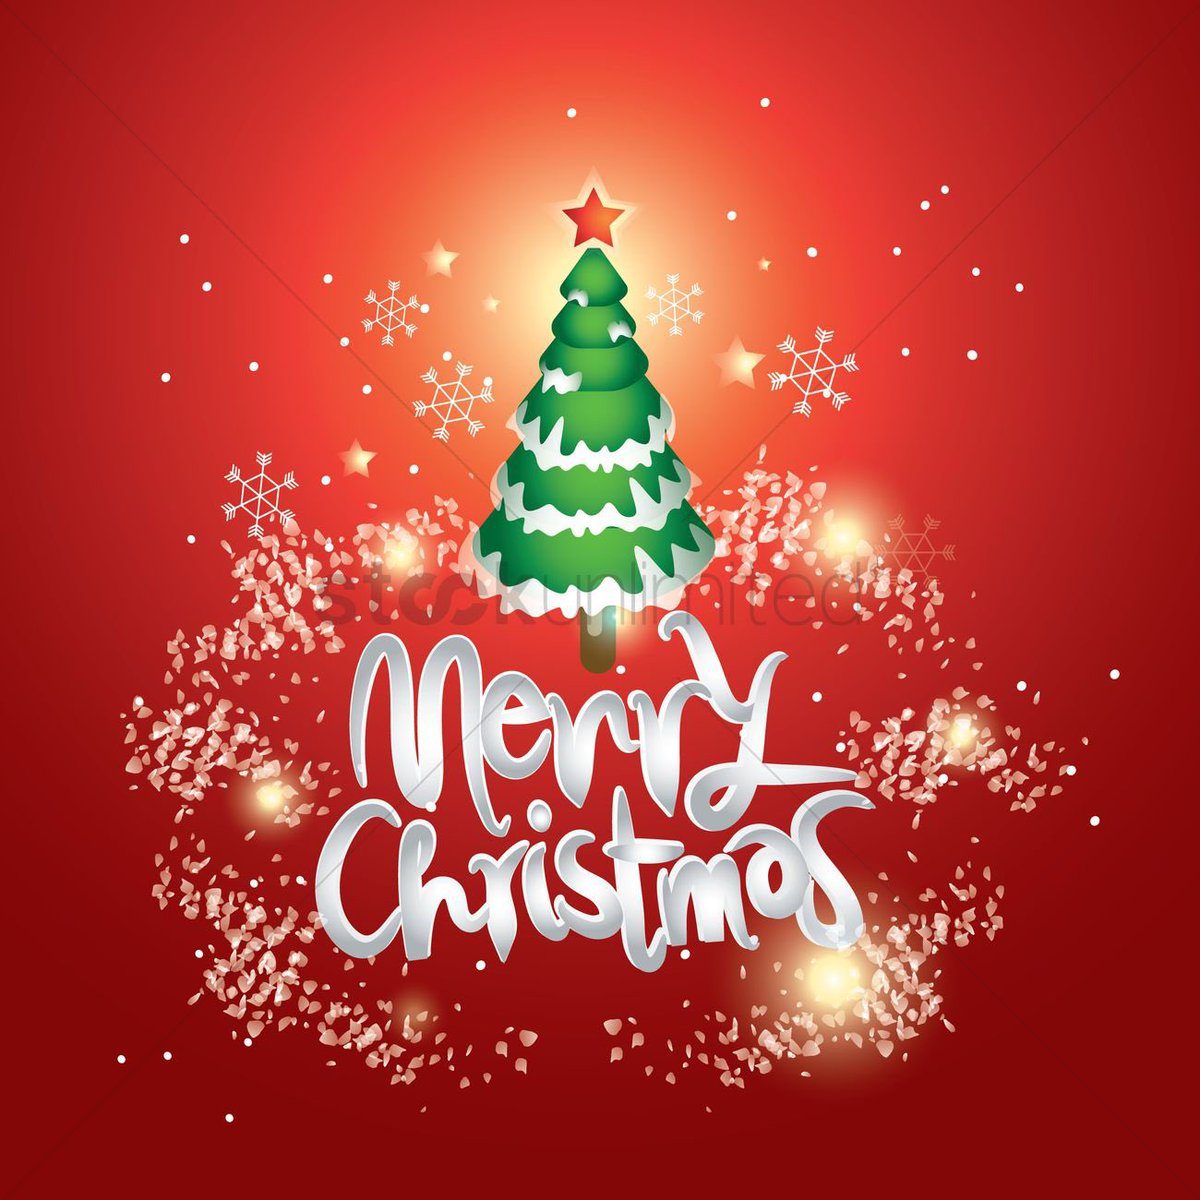 To all celebrating we wish you a Merry Christmas and joy this holiday season #christmas